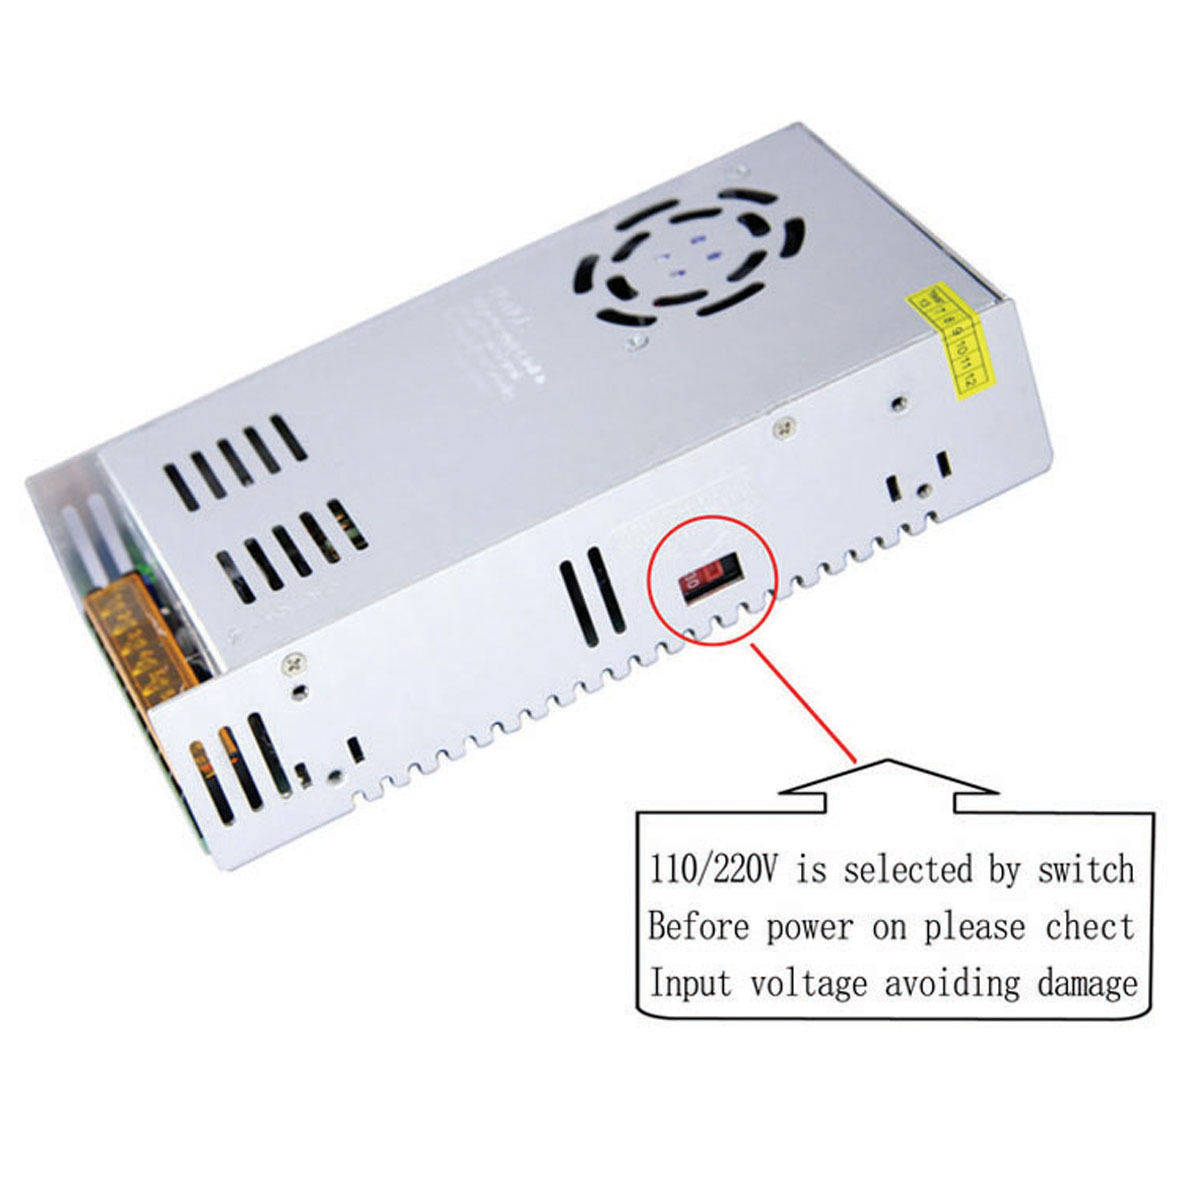 5v 12v 24v Universal Regulated Switching Power Supply Ac Dc For Led How To Decipher The Wiring Schematic Of A 110220v An Reliable With High Quality Material Durable And Safety In Usea New Style Which Can Keep Voltage